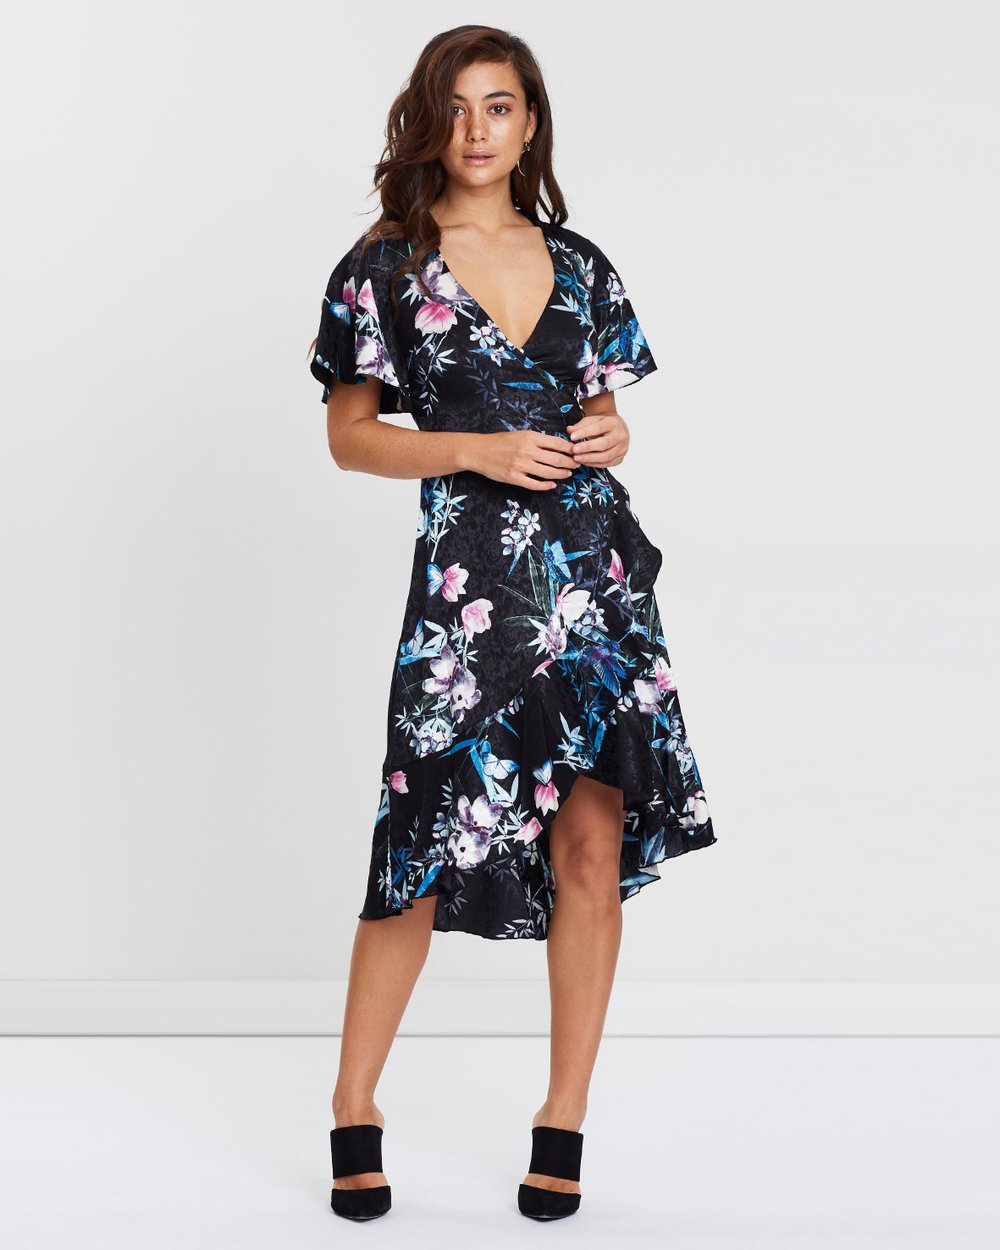 c99b6aa8a5f6 Amelia Print Floral Wrap Dress by Lipsy Online